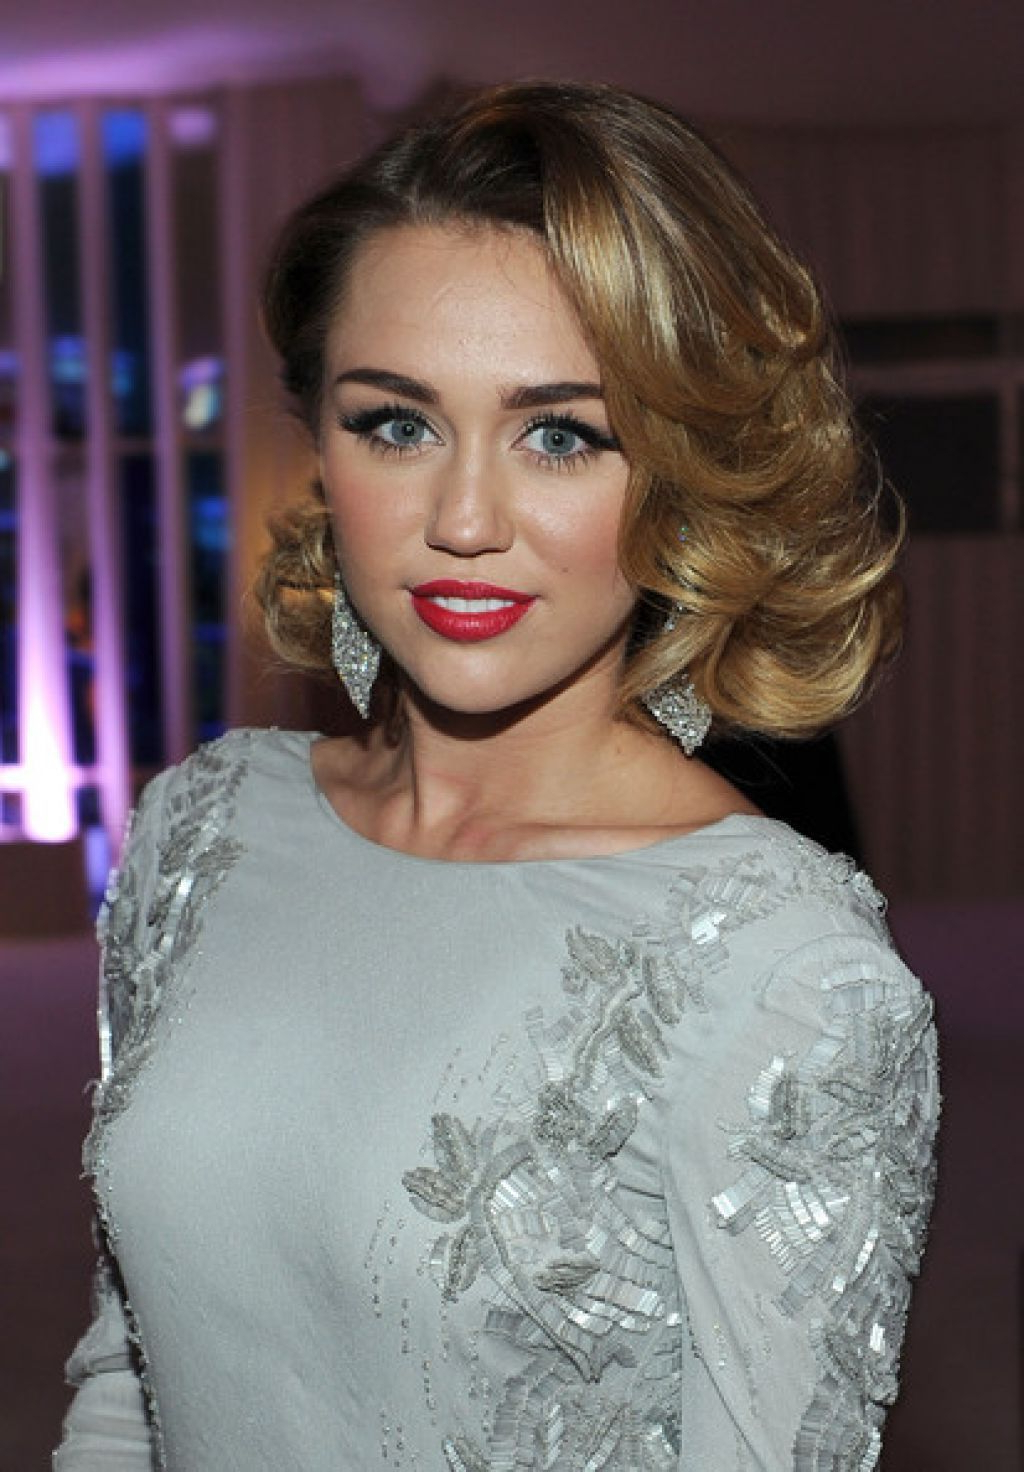 Recent Miley Cyrus Medium Hairstyles Pertaining To Miley Cyrus Medium Shoulder Length Hairstyles For Wavy Hair Photo (View 17 of 20)